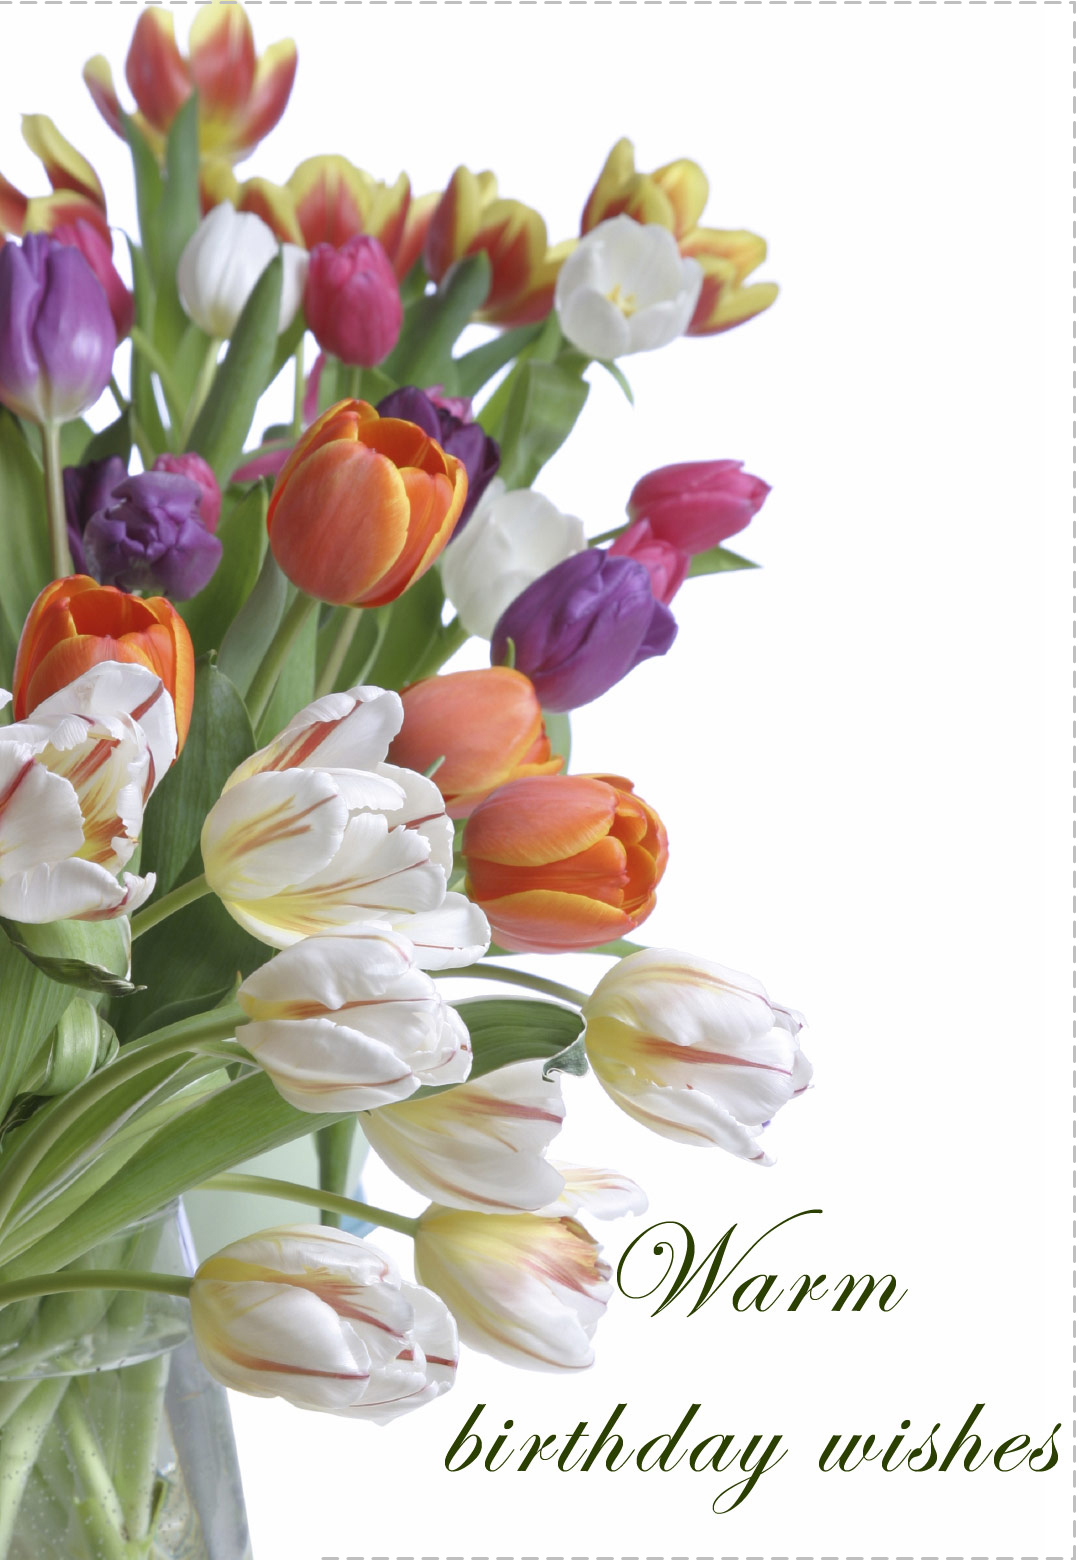 birthday greeting cards images with flowers ; 048908bc8b8d14f93eb70ea3bbafd890